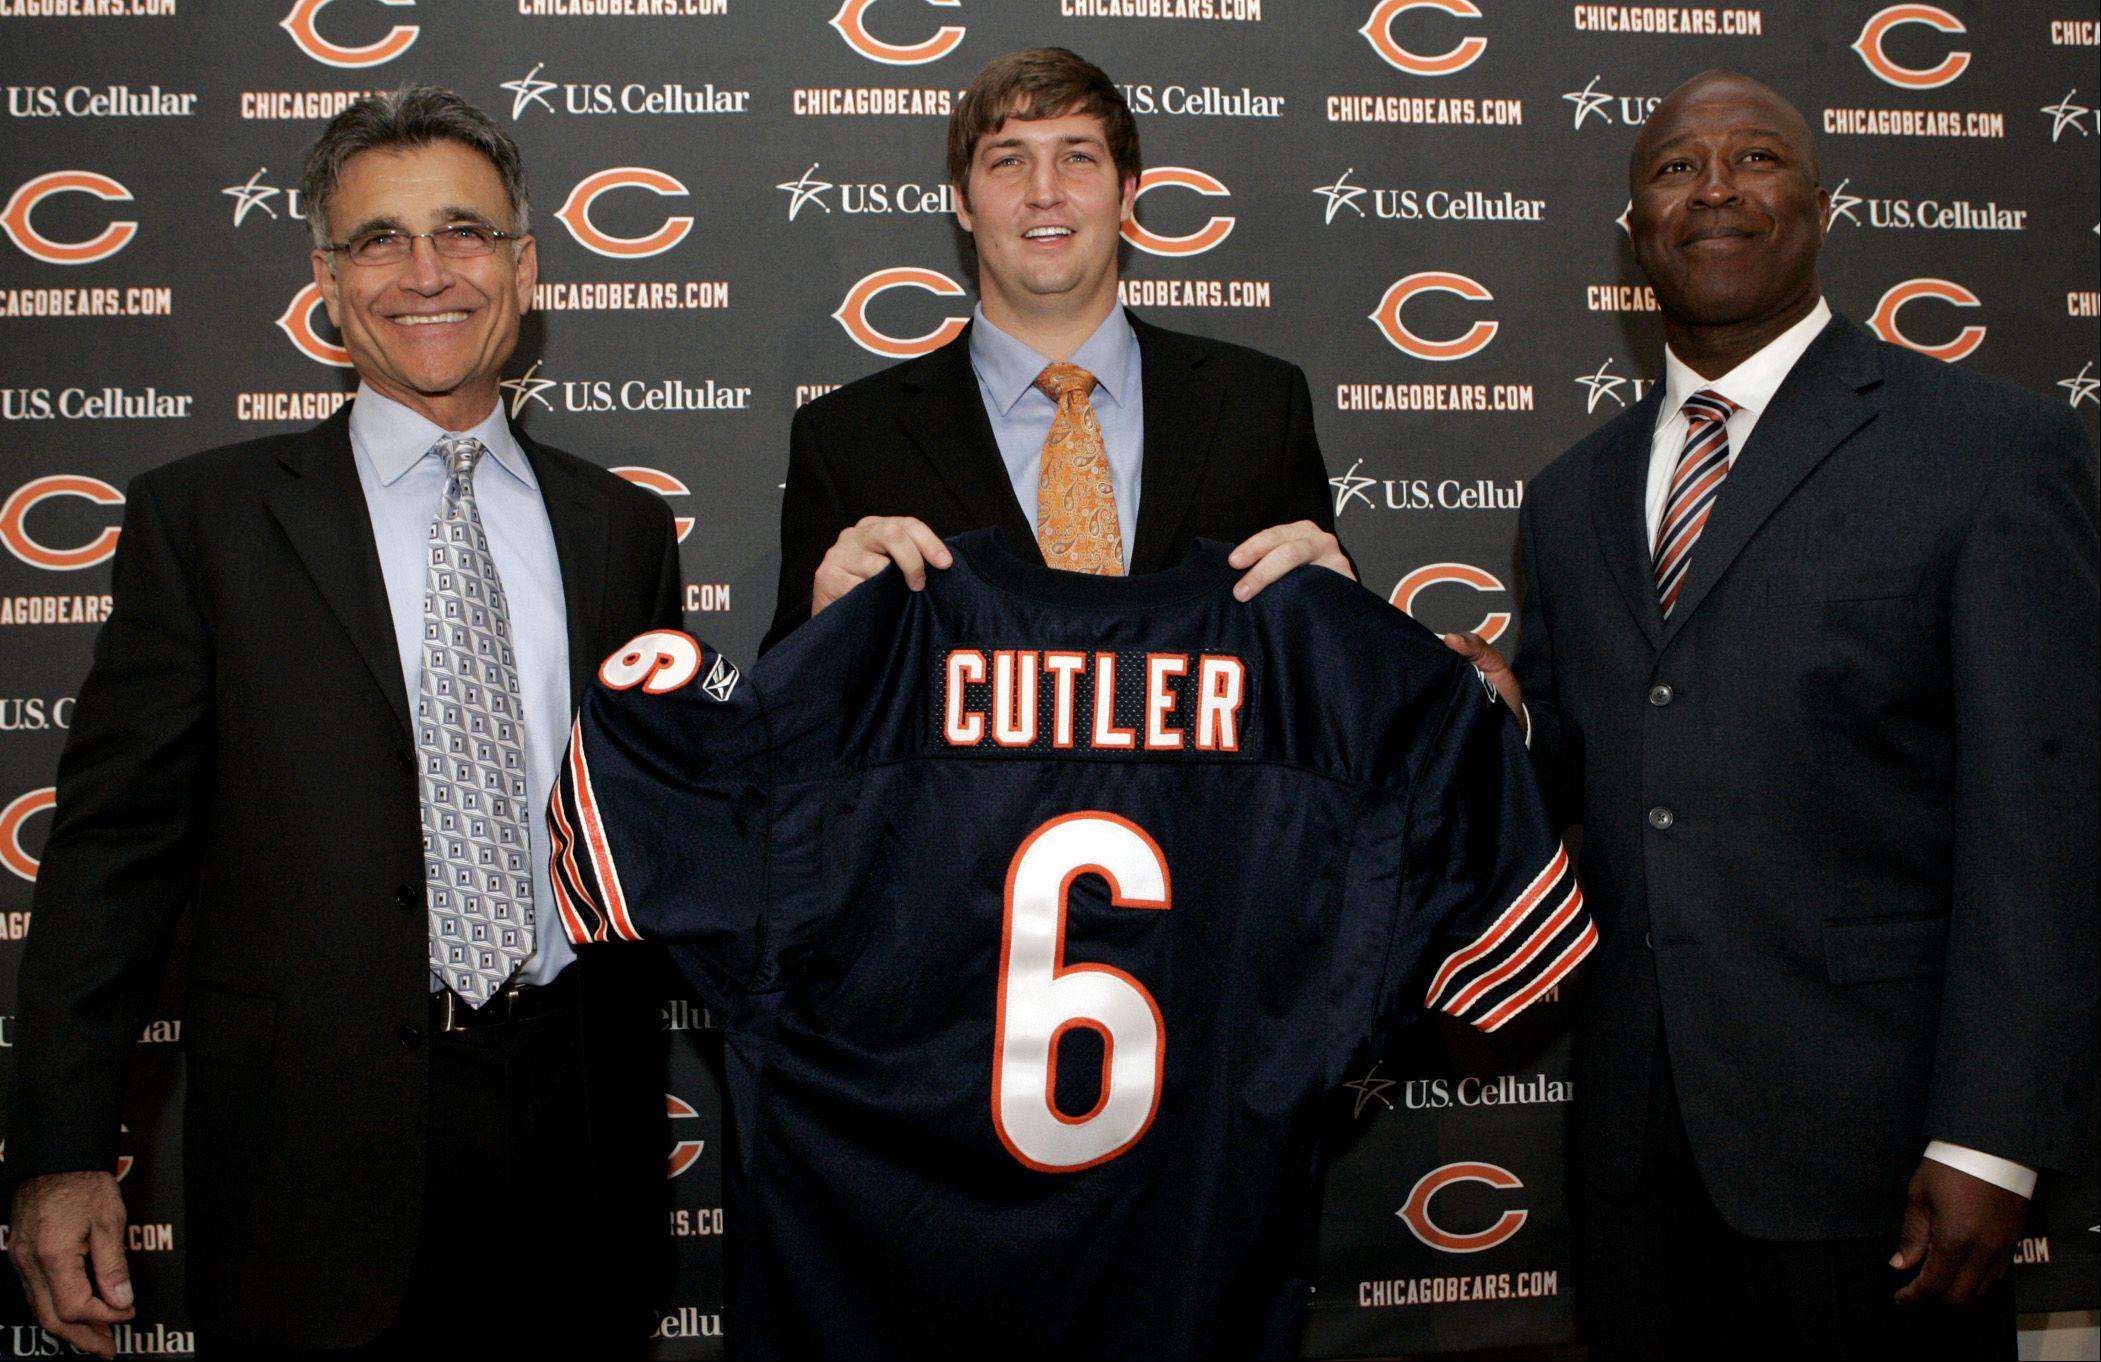 Chicago Bears general manager Jerry Angelo, left, new player Jay Cutler, center, and head coach Lovie Smith pose for a photo during a news conference, Friday, April 3, 2009, in Lake Forest, Ill.